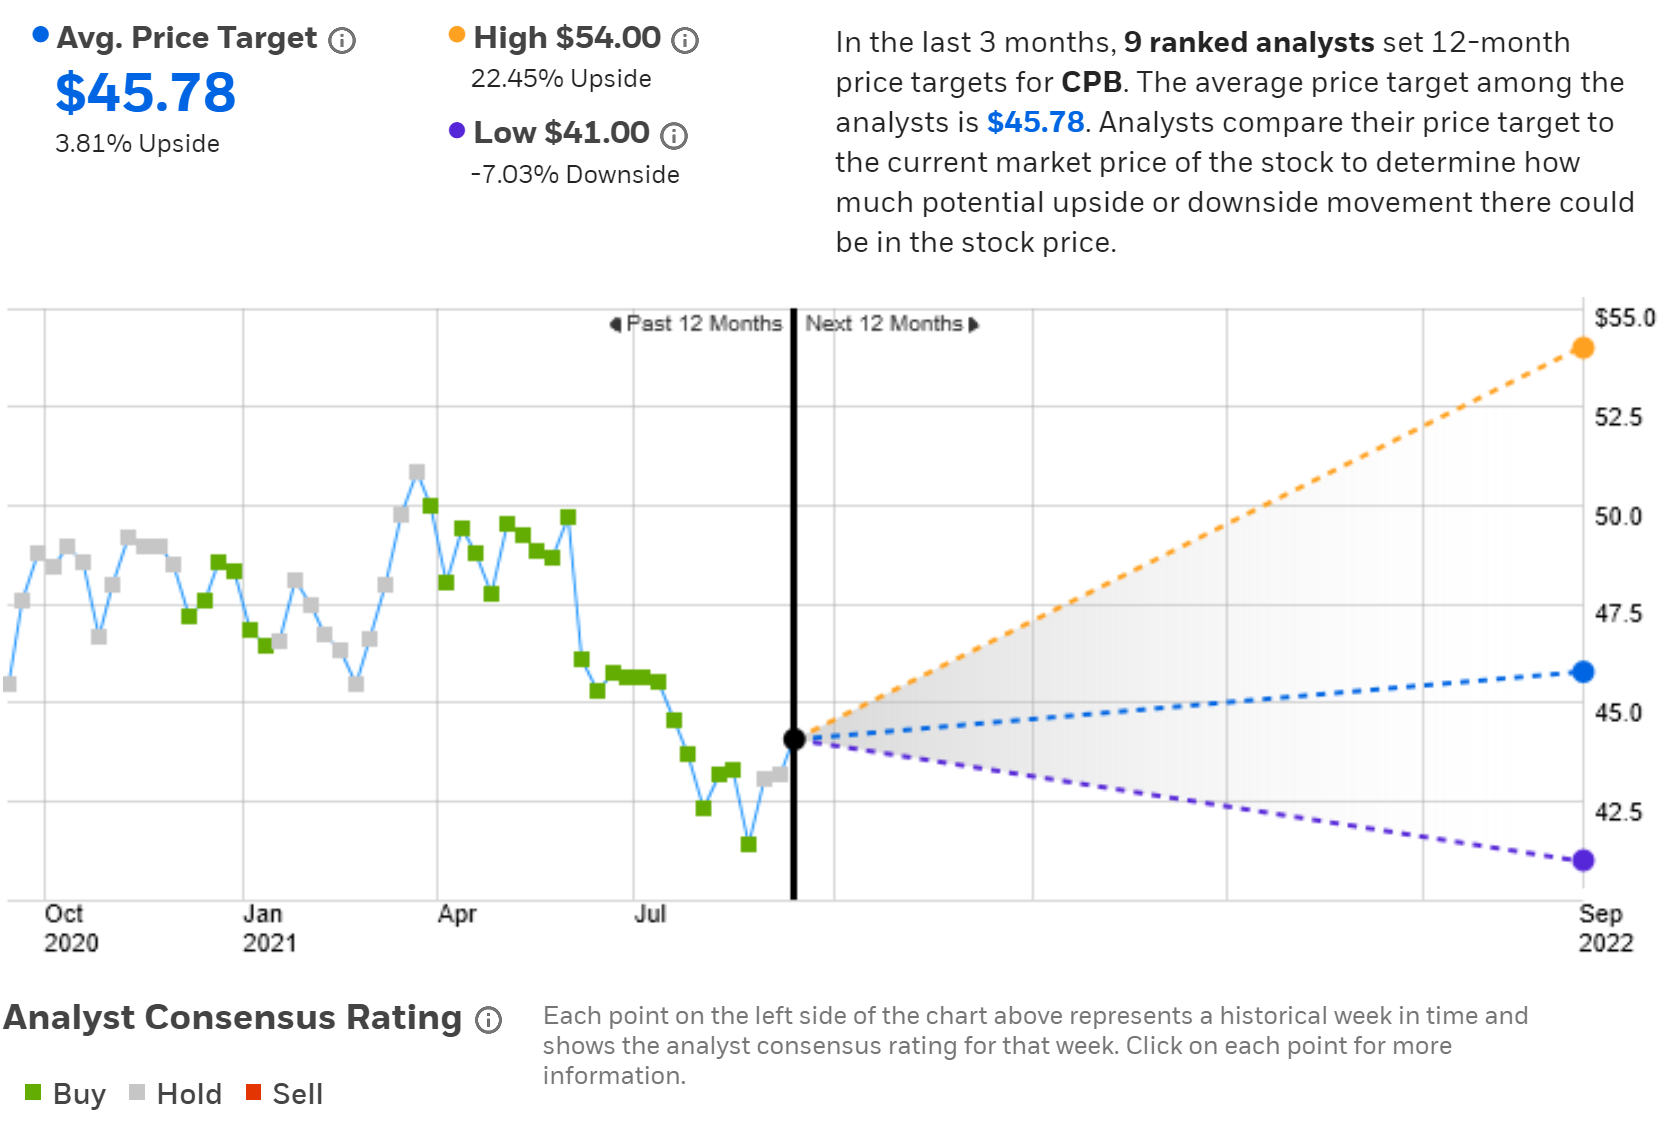 Wall Street Consensus Rating And 12-Month Price Target